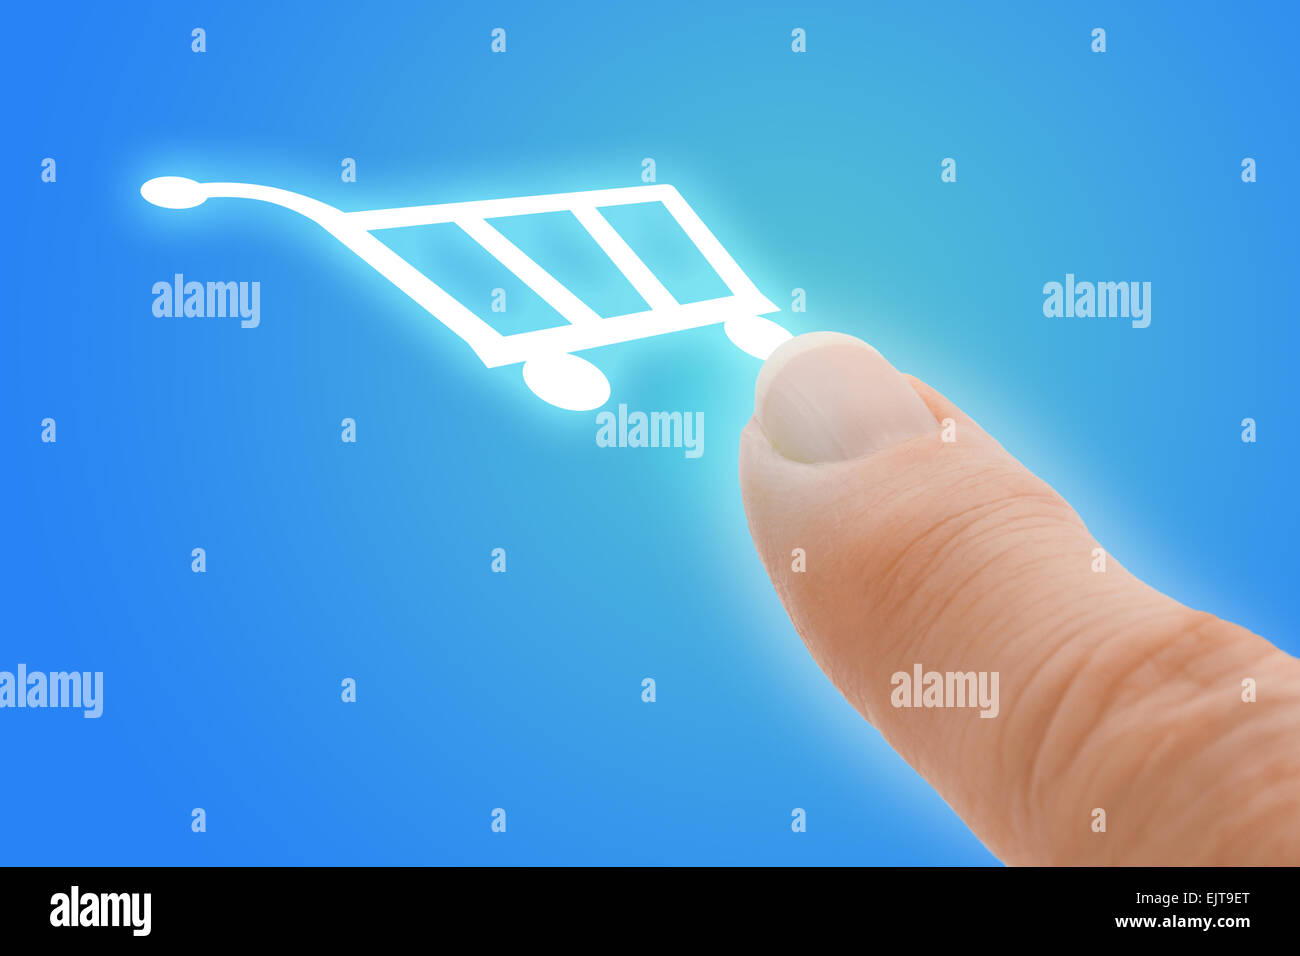 Buy Now Touch Screen Finger Pointing to Shopping Cart Icon - Stock Image